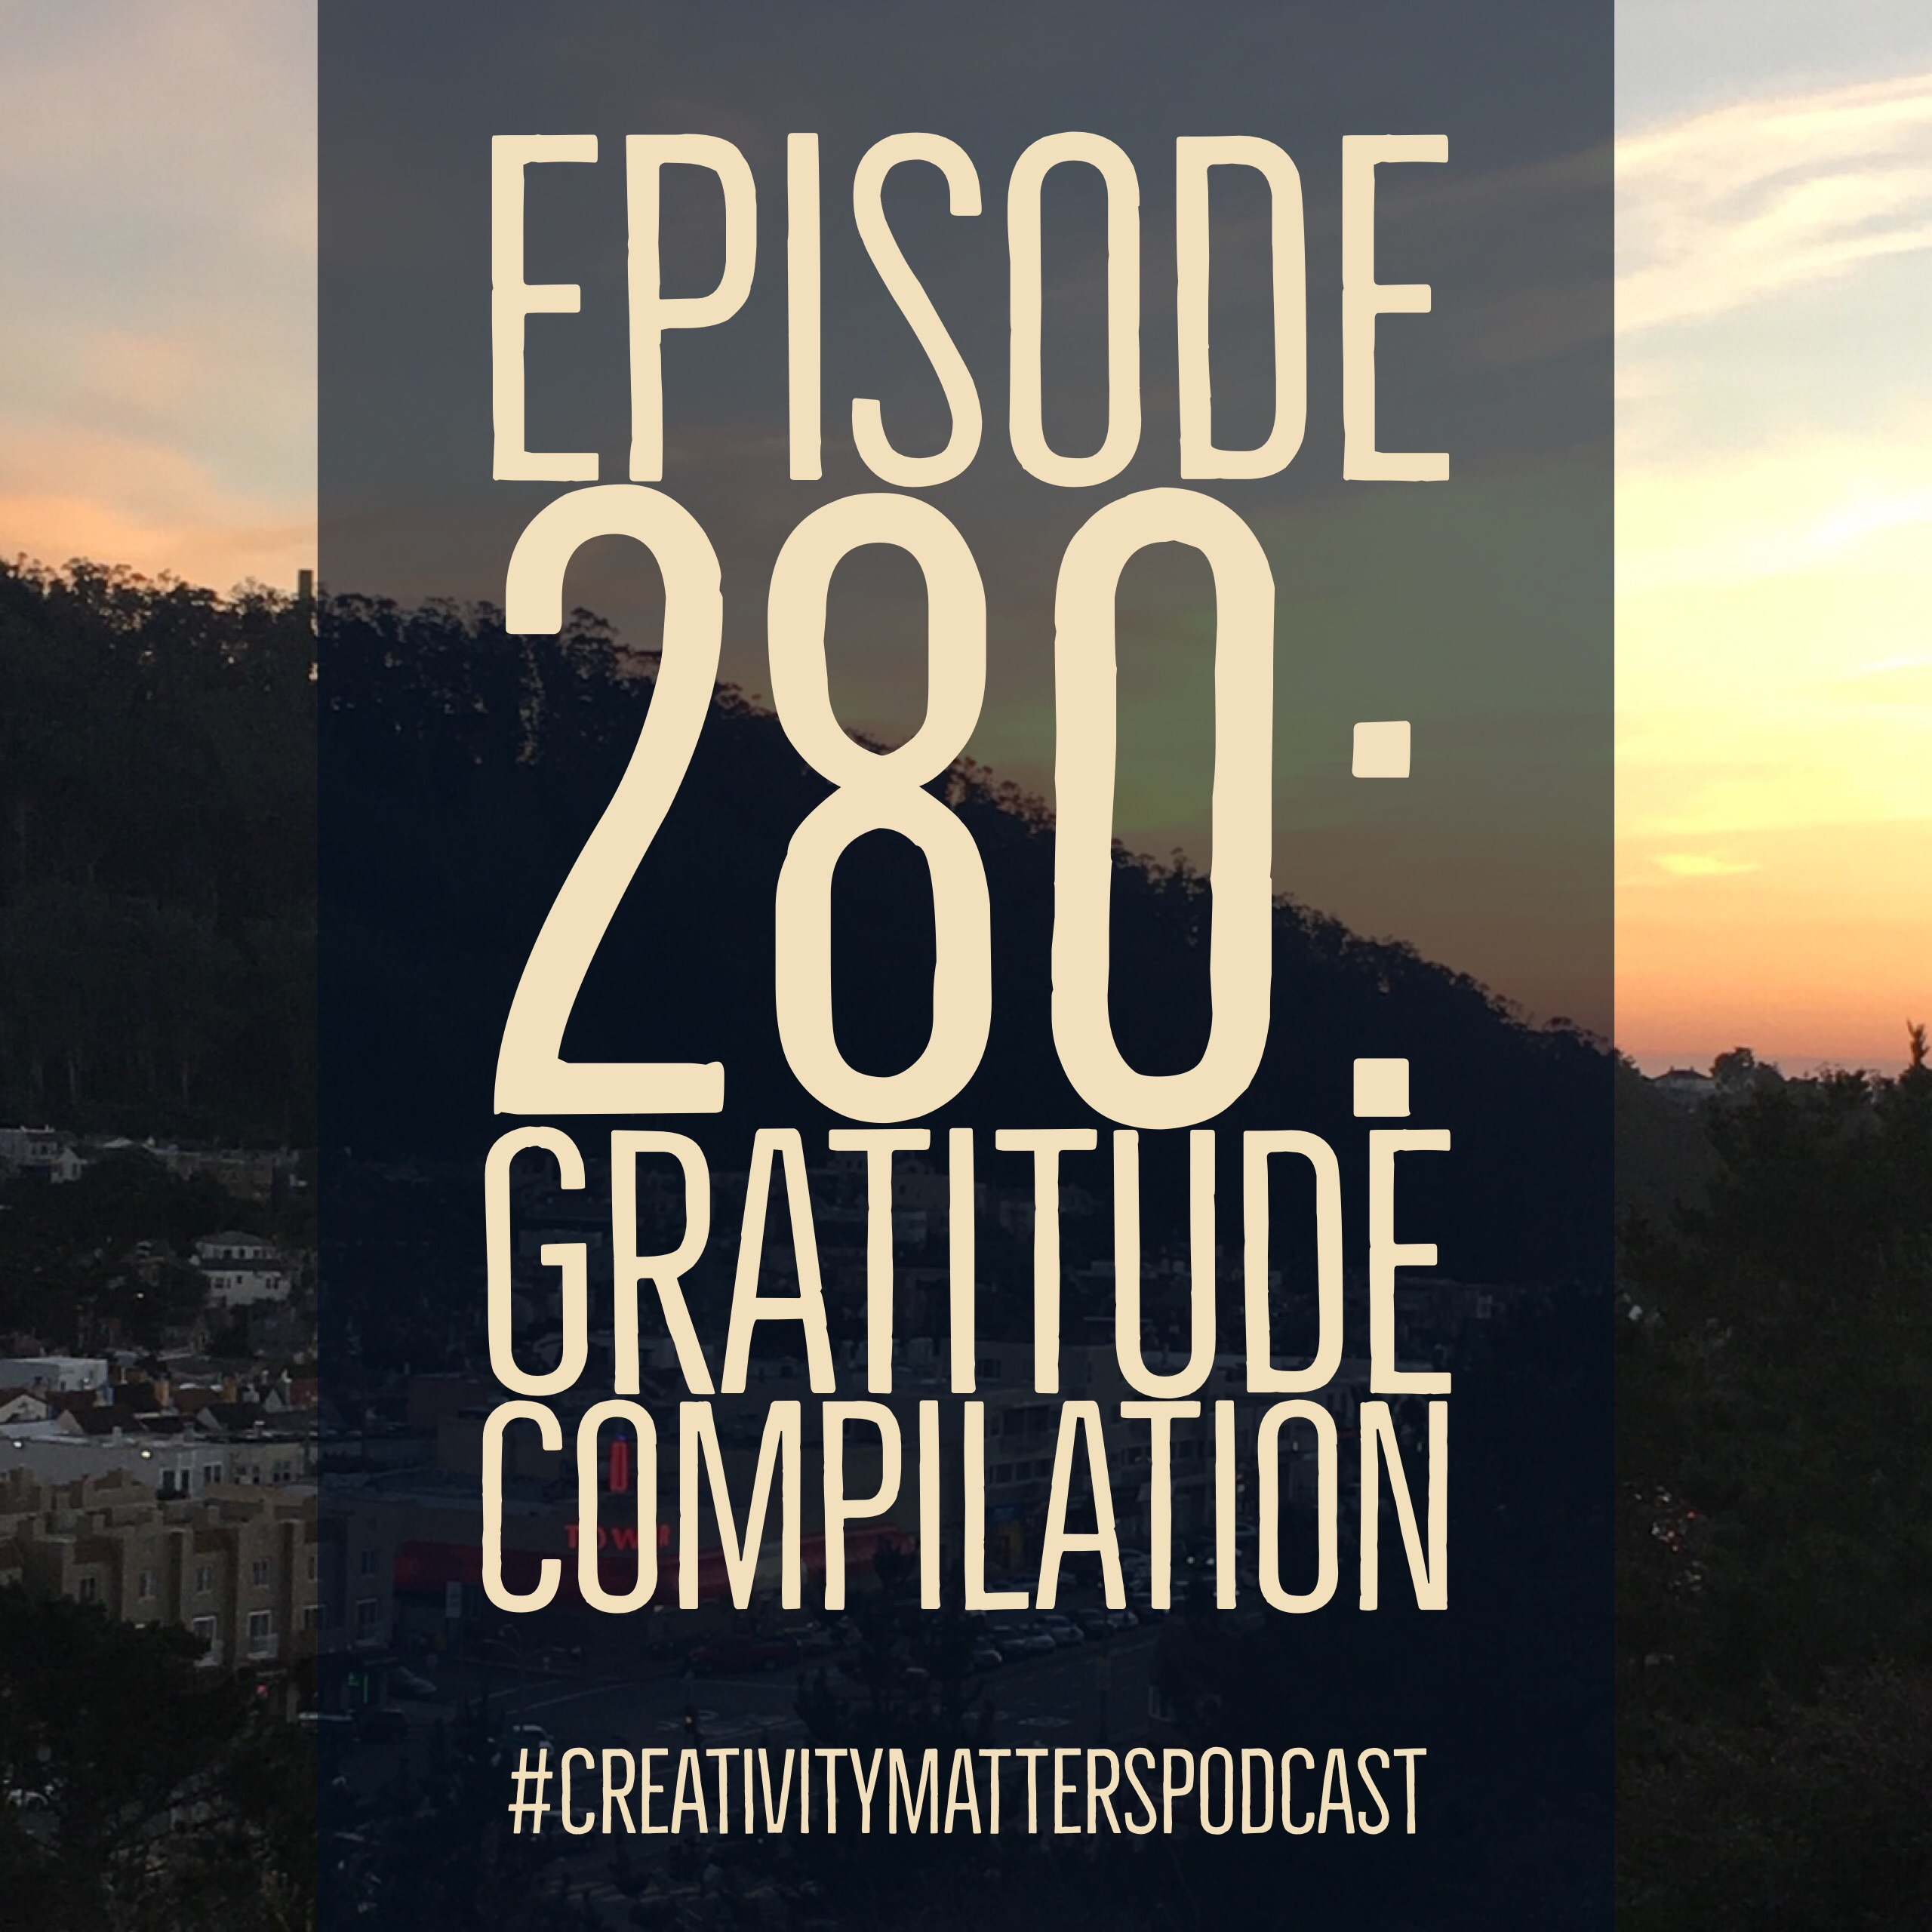 Episode 280: Gratitude Compilation